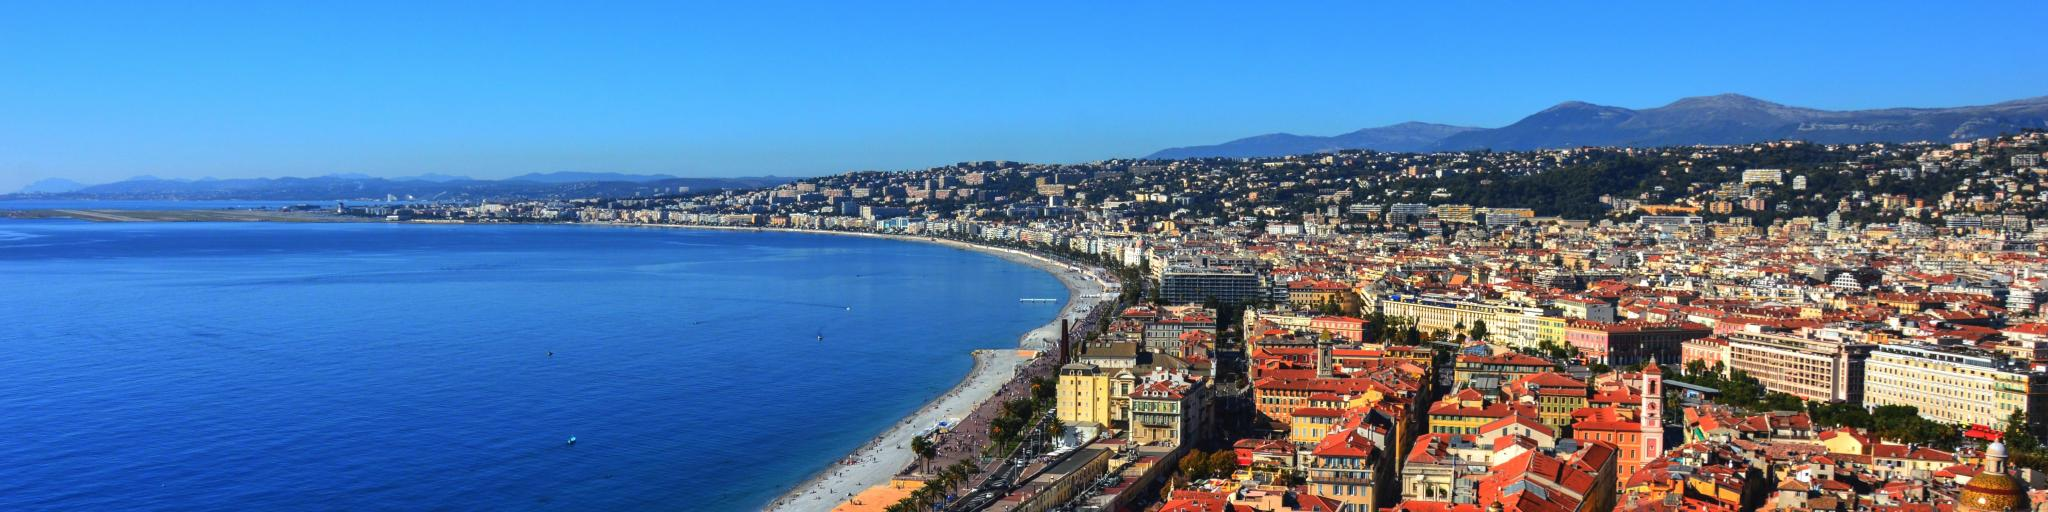 A view over the Promenade des Anglais in Nice, with the city's terracotta rooftops and the sea in shot